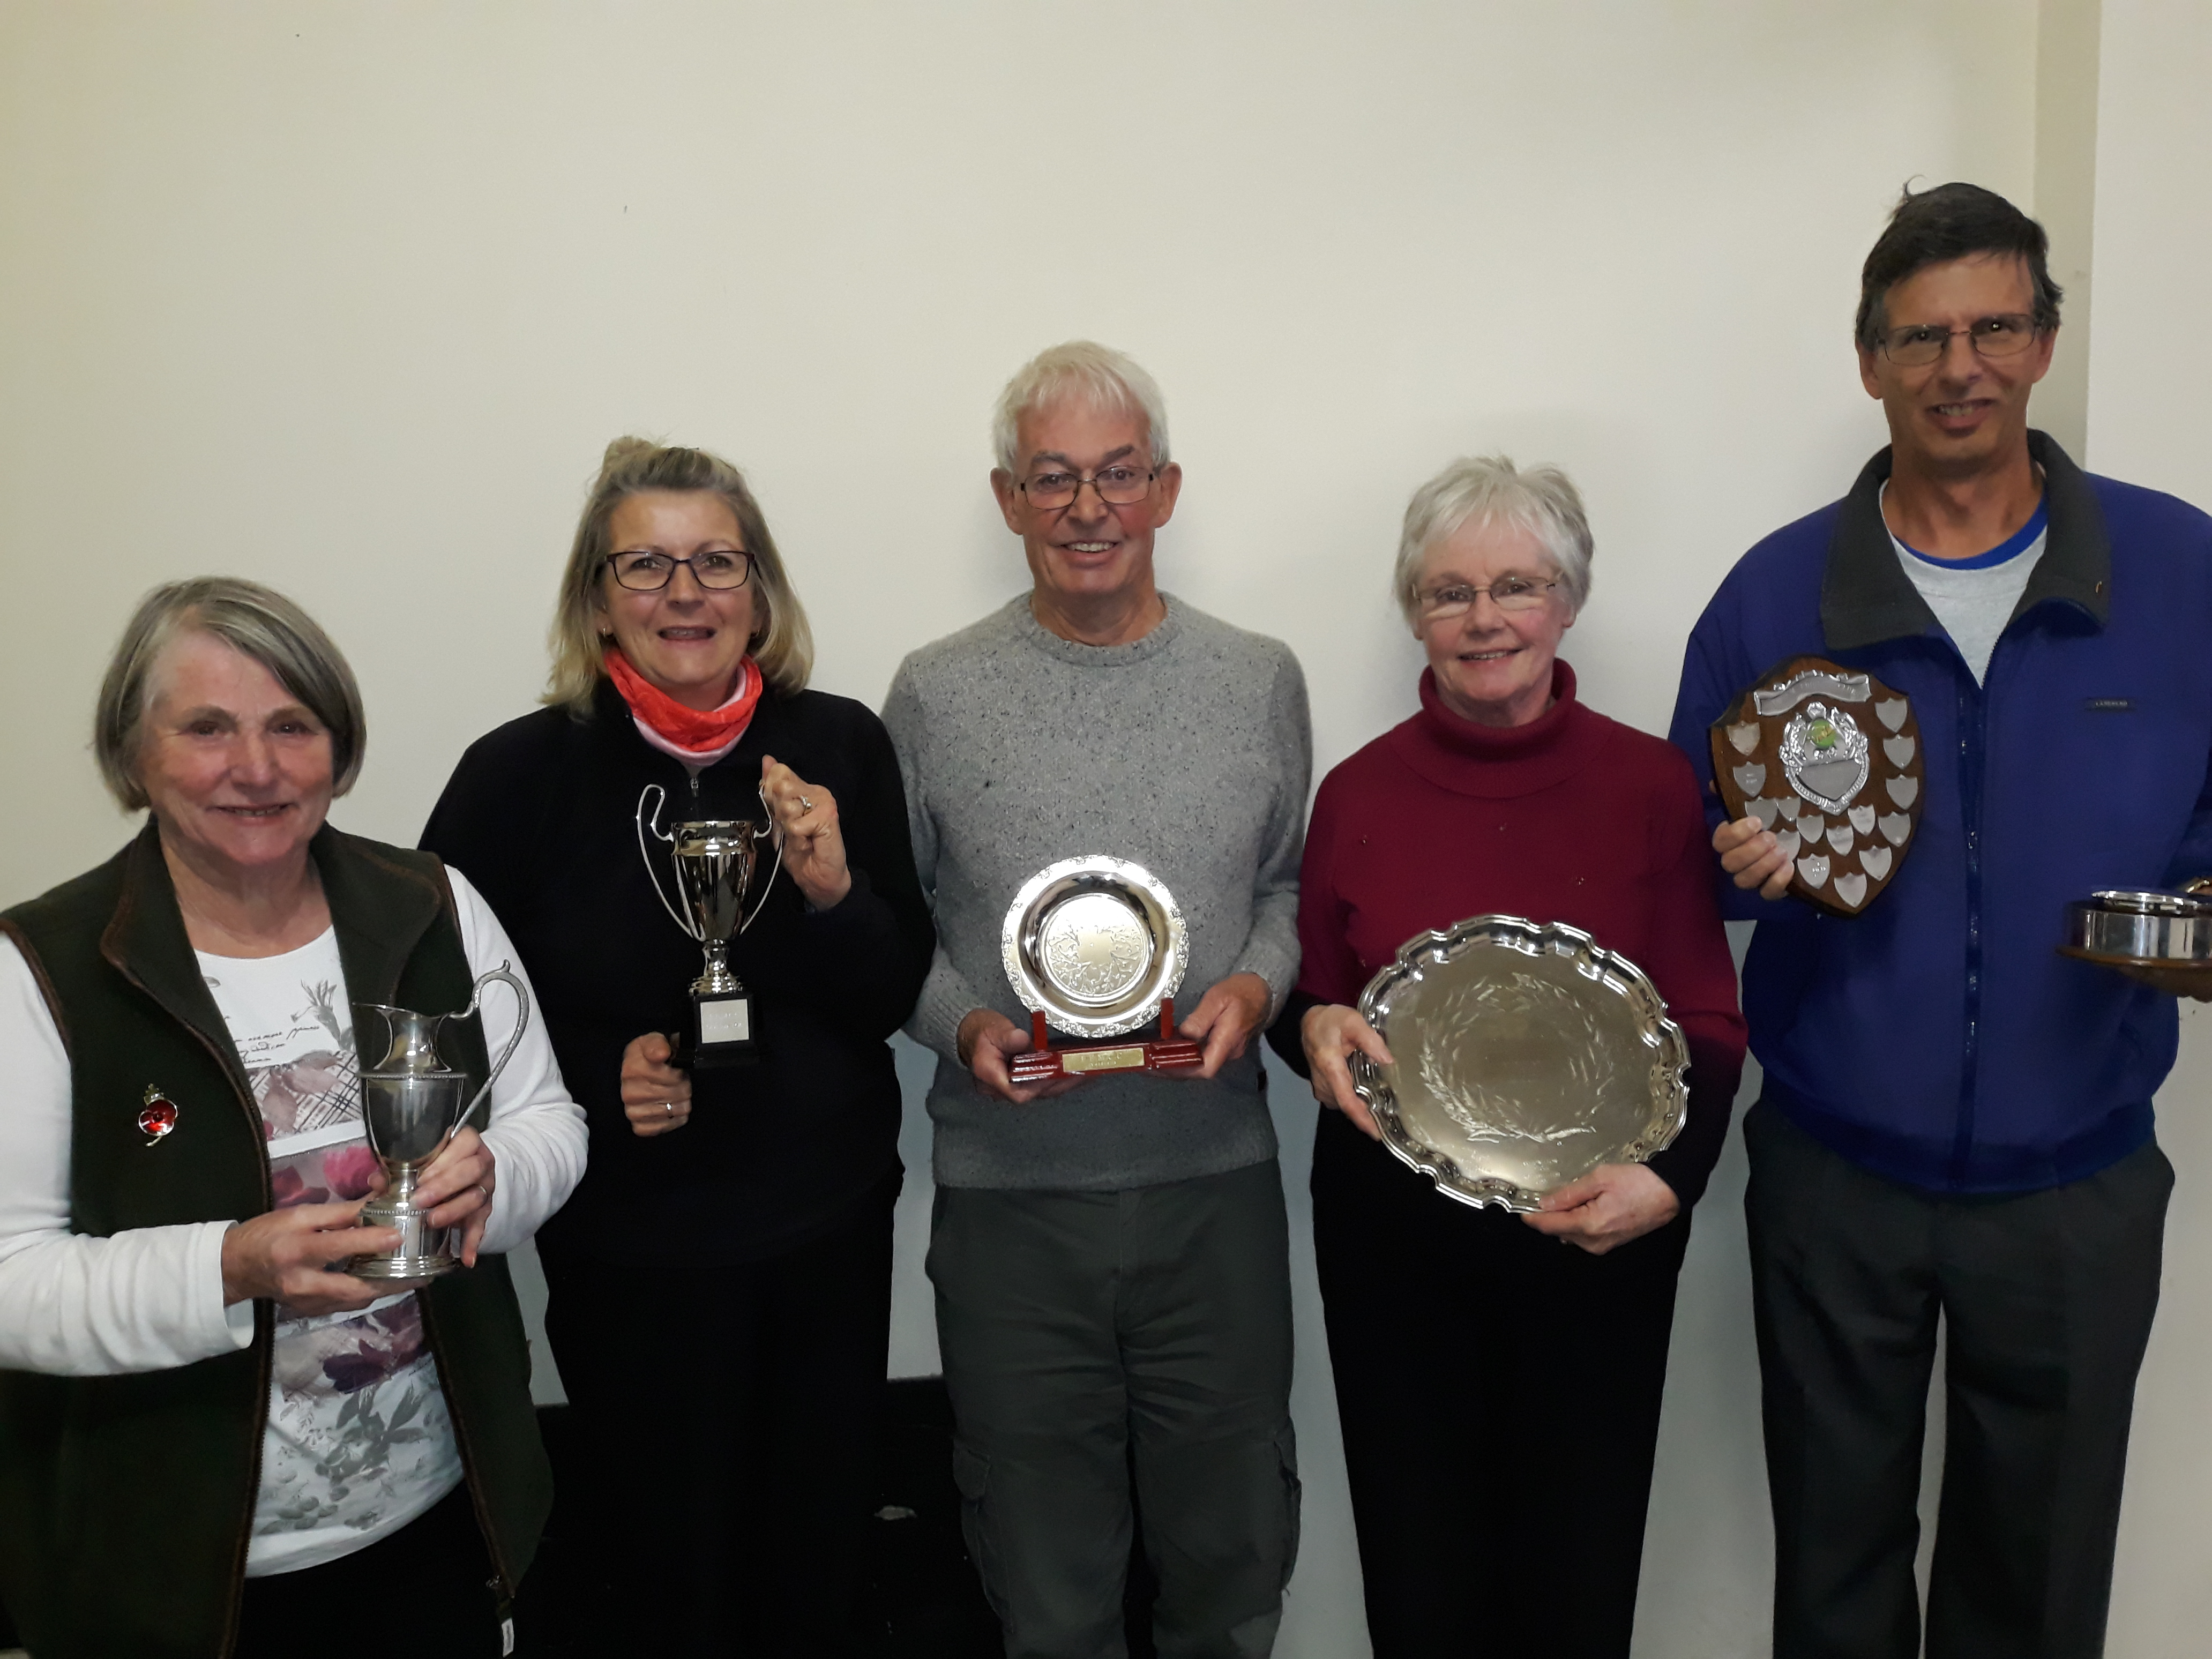 2018 FEMCC Trophy winners